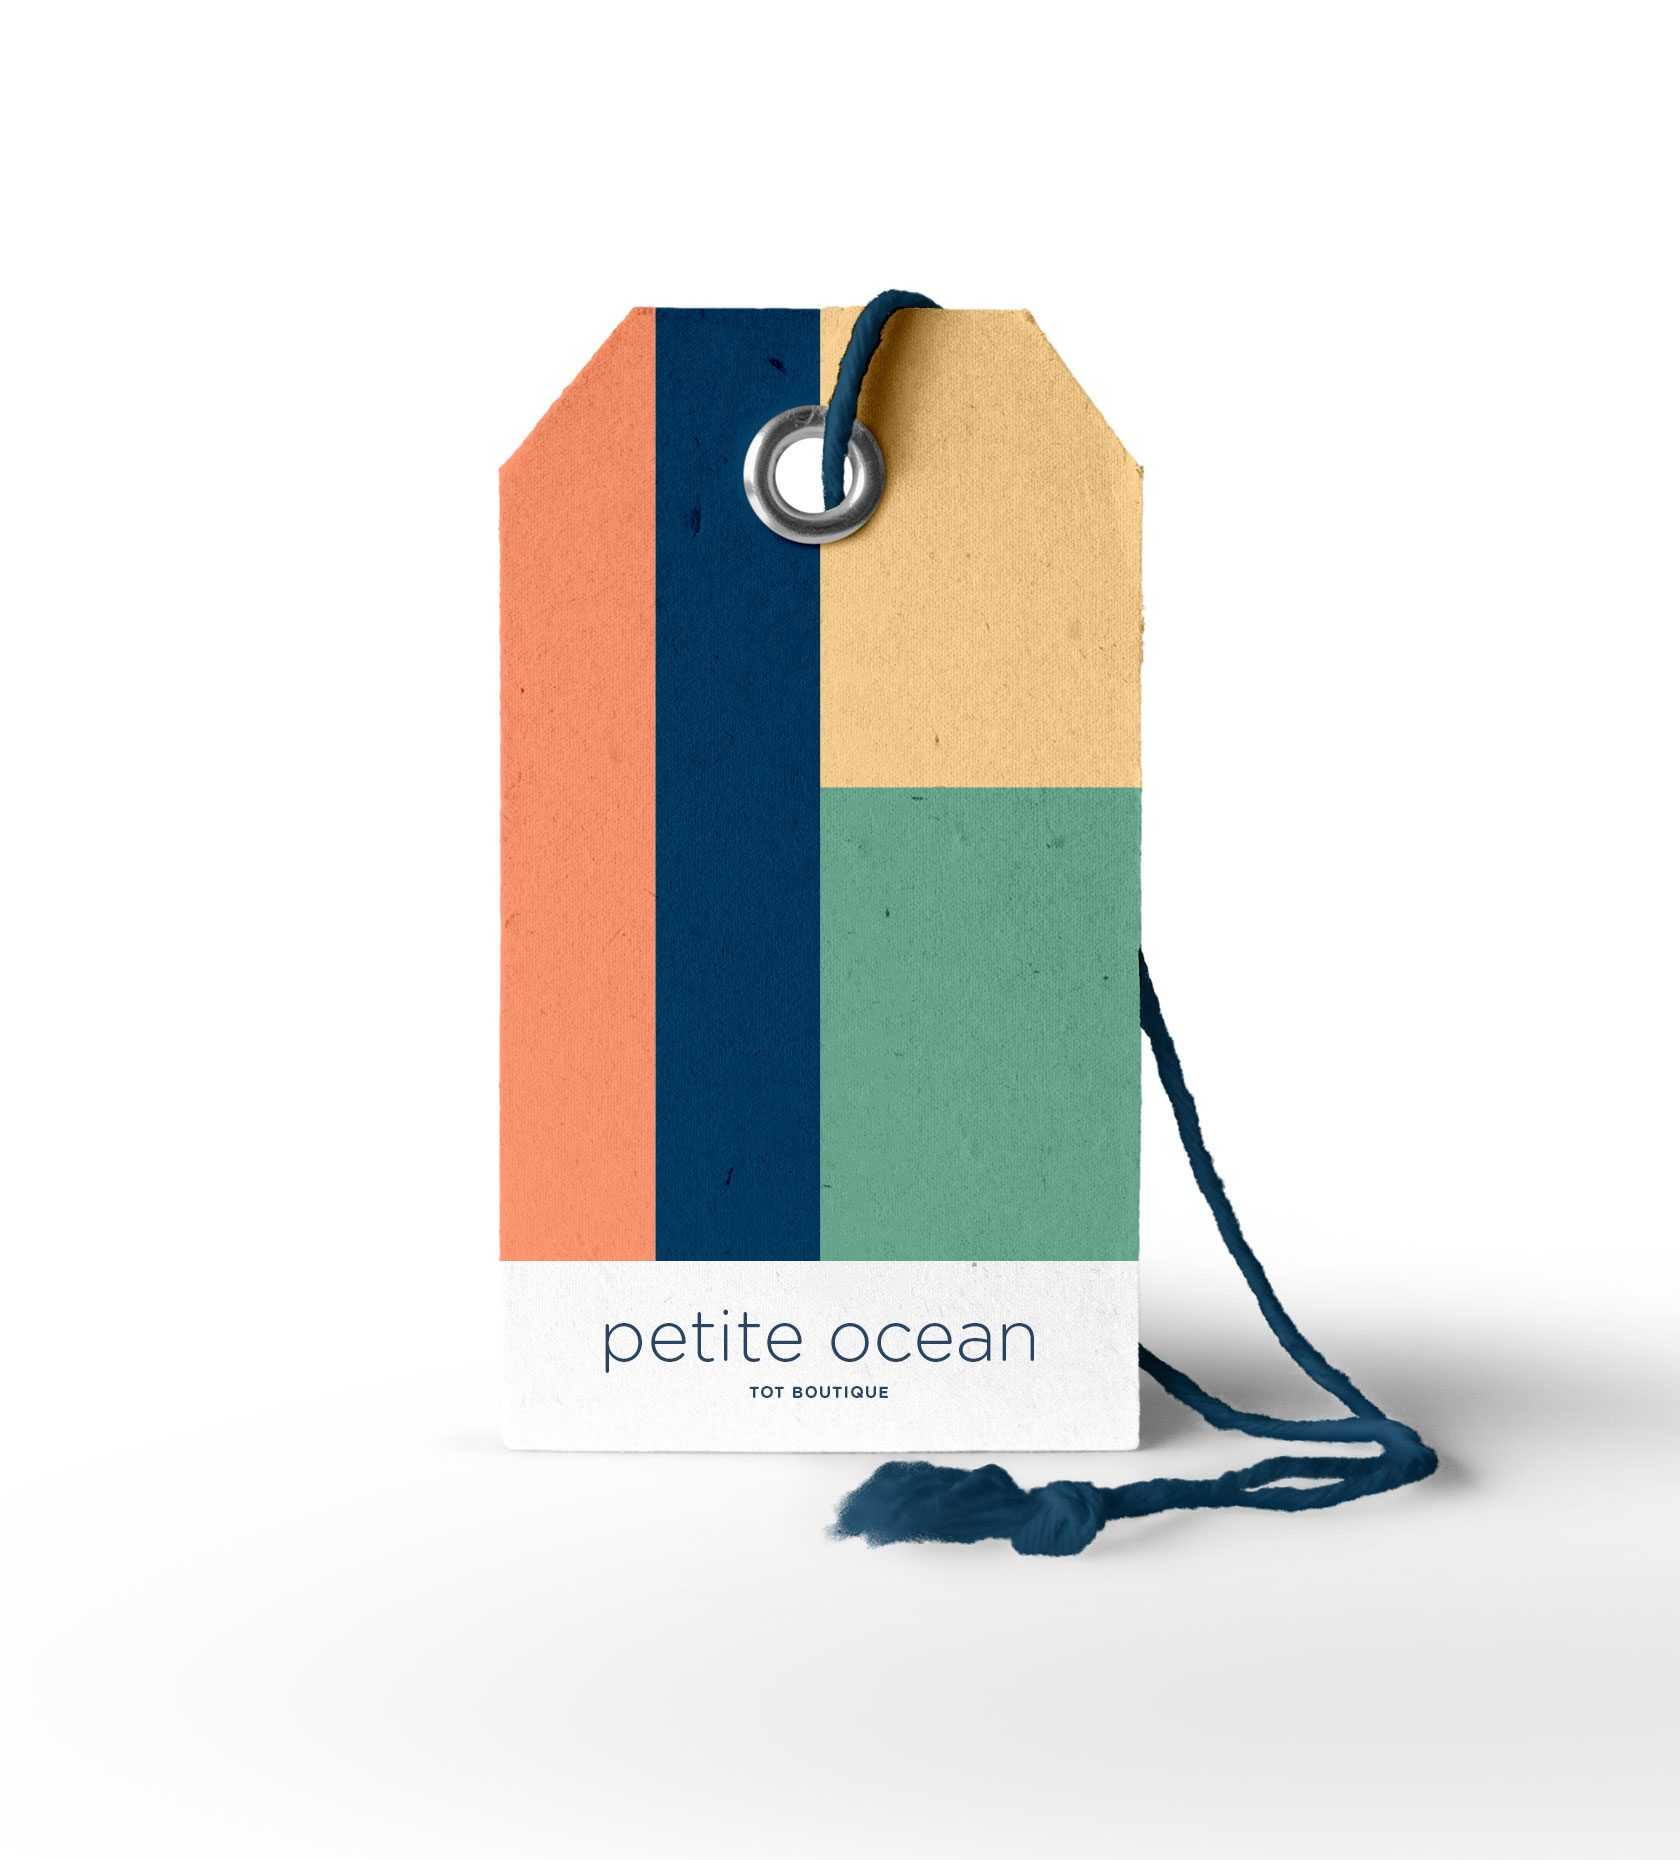 Petite Ocean Clothing Label Design by Furia